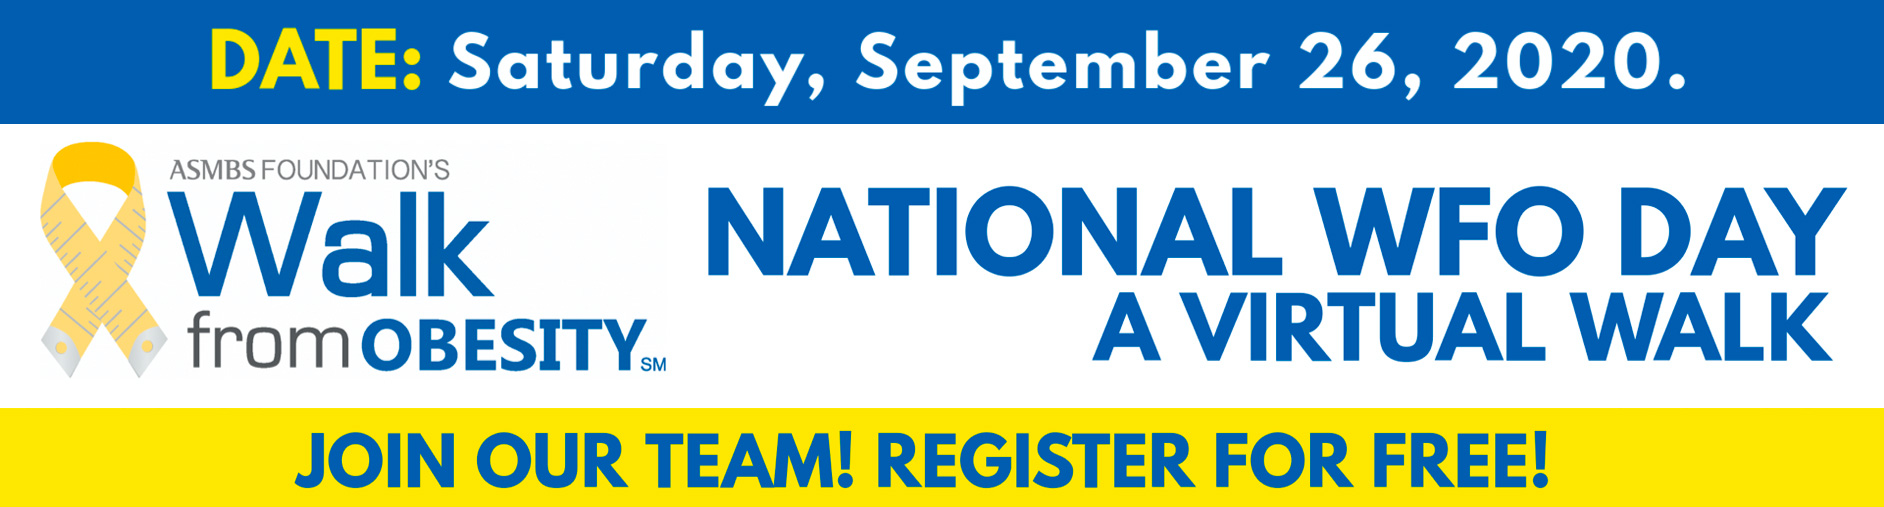 Join Our Team! Date: Saturday, September 26, 2020. ASMBS Foundation's Walk from Obesity℠ National WFO Day A Virtual Walk